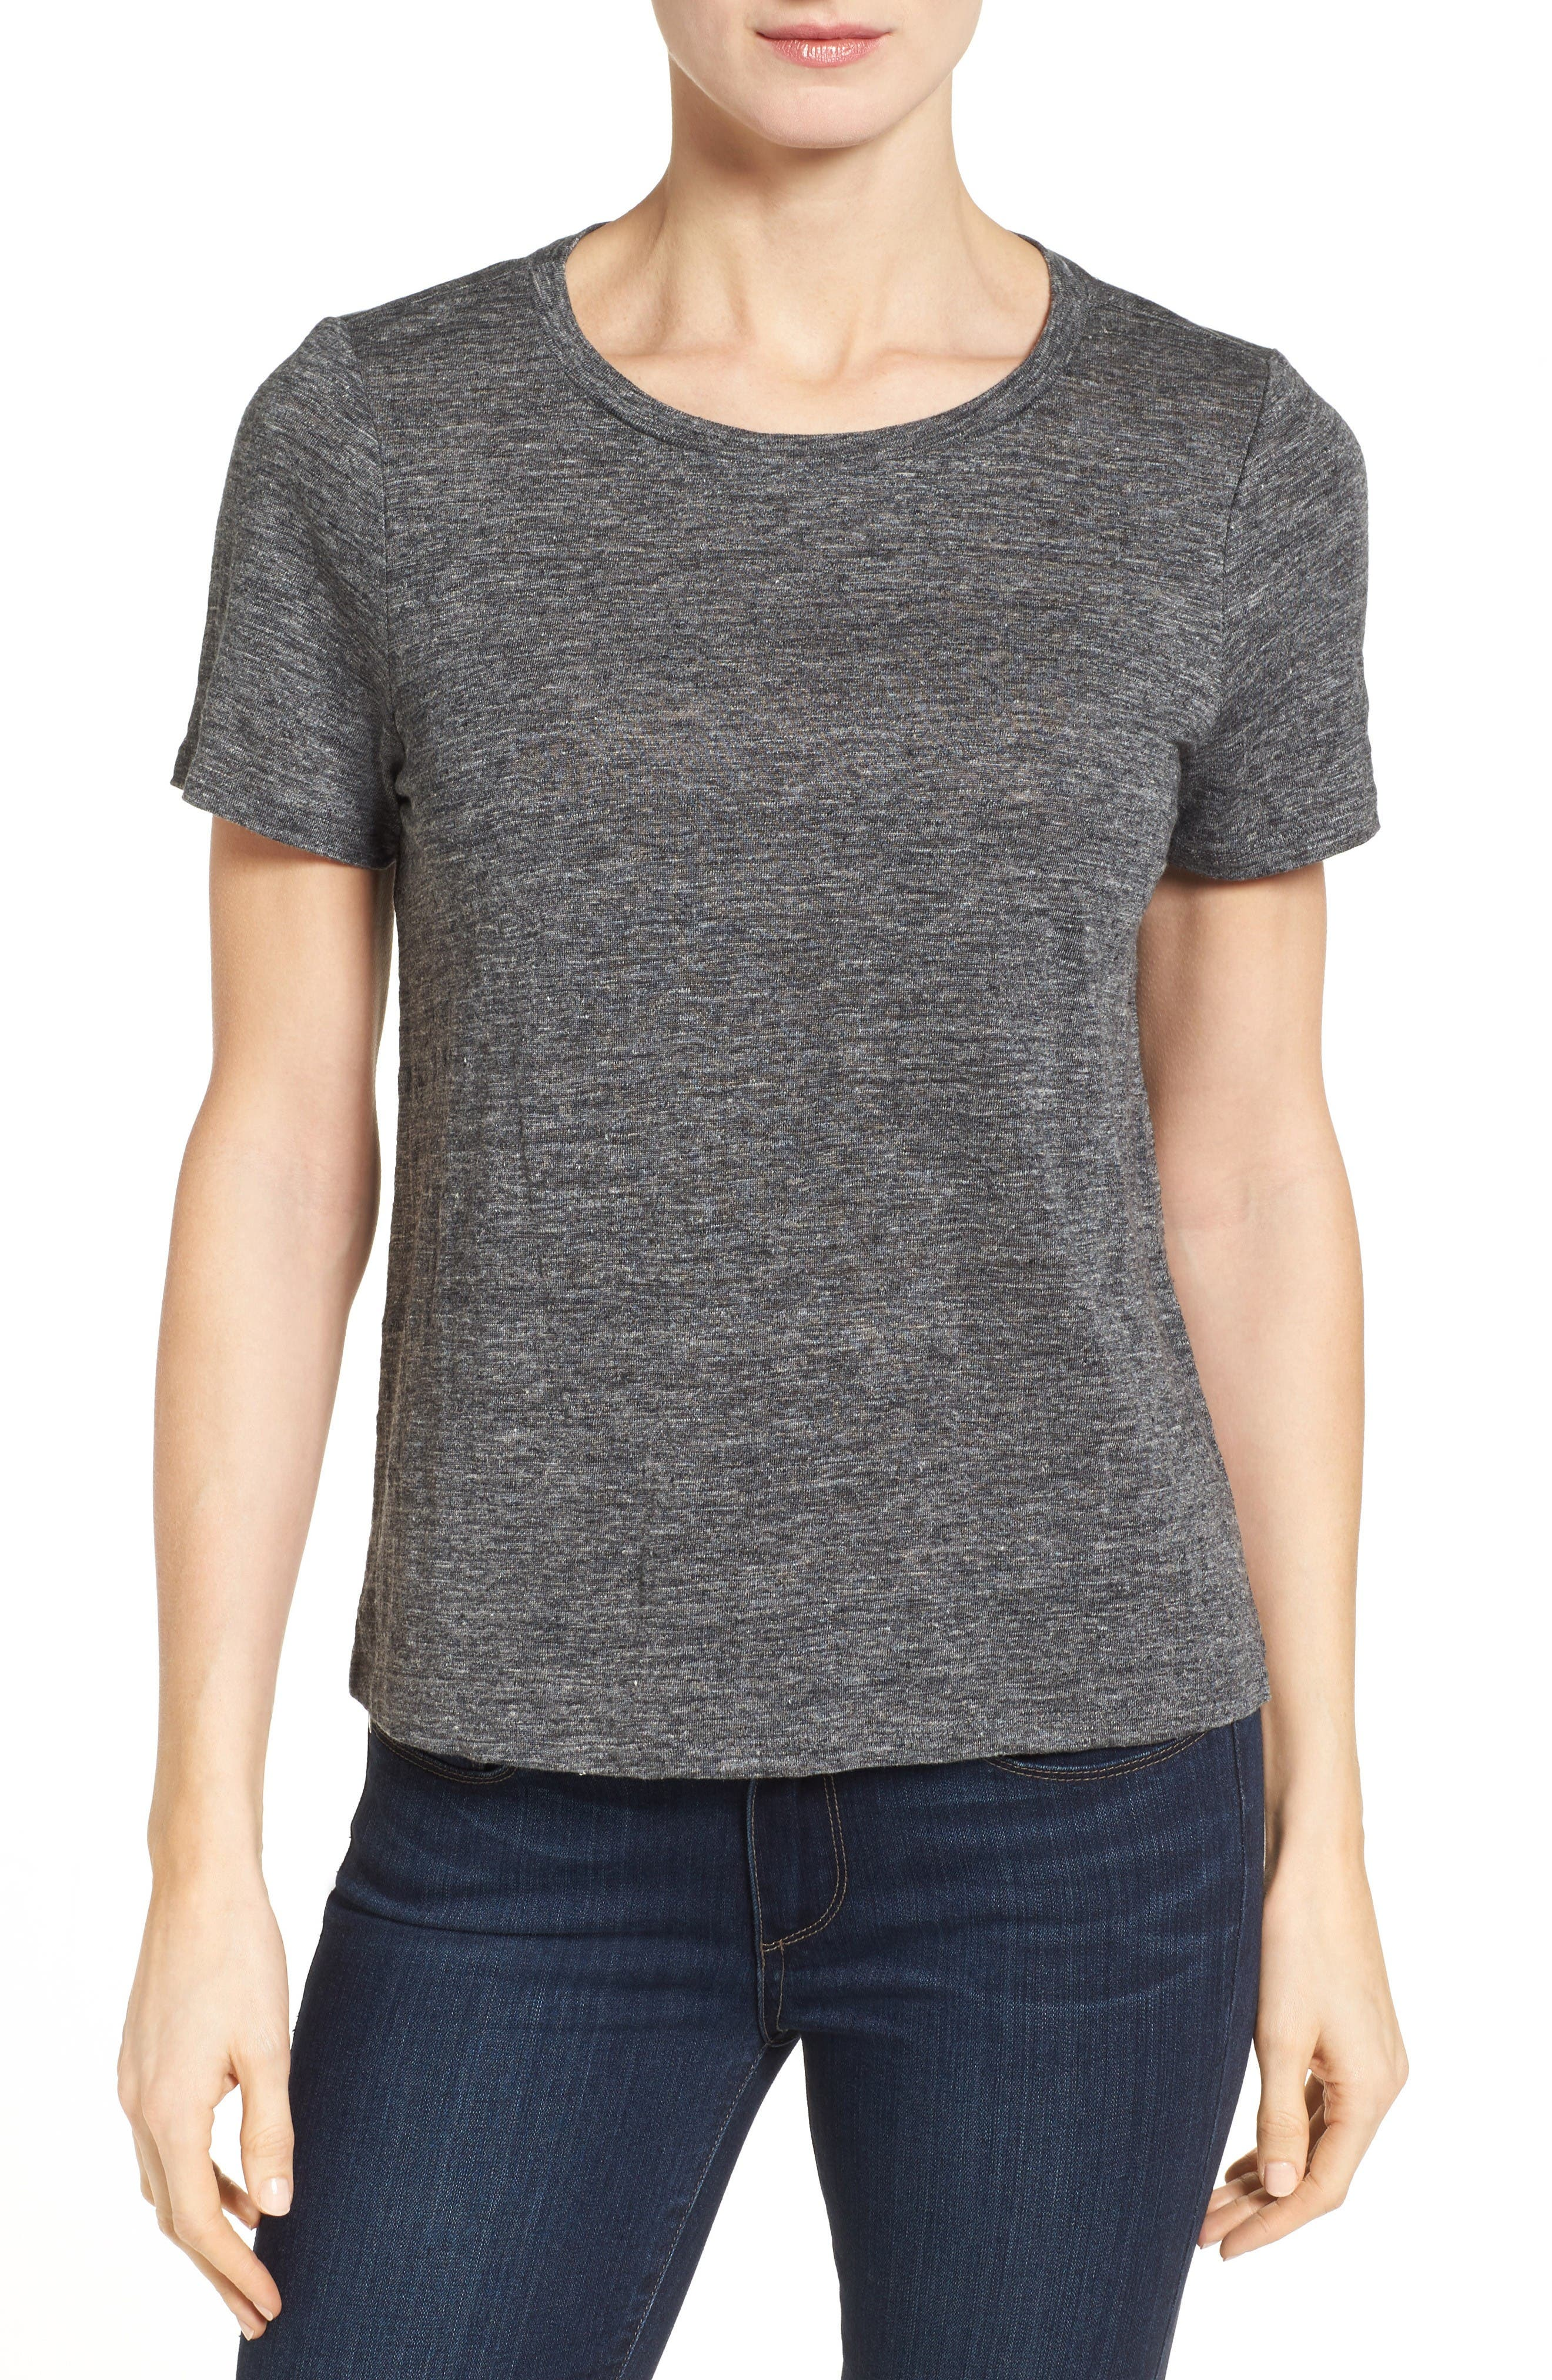 Alternate Image 1 Selected - Eileen Fisher Organic Linen Knit Tee